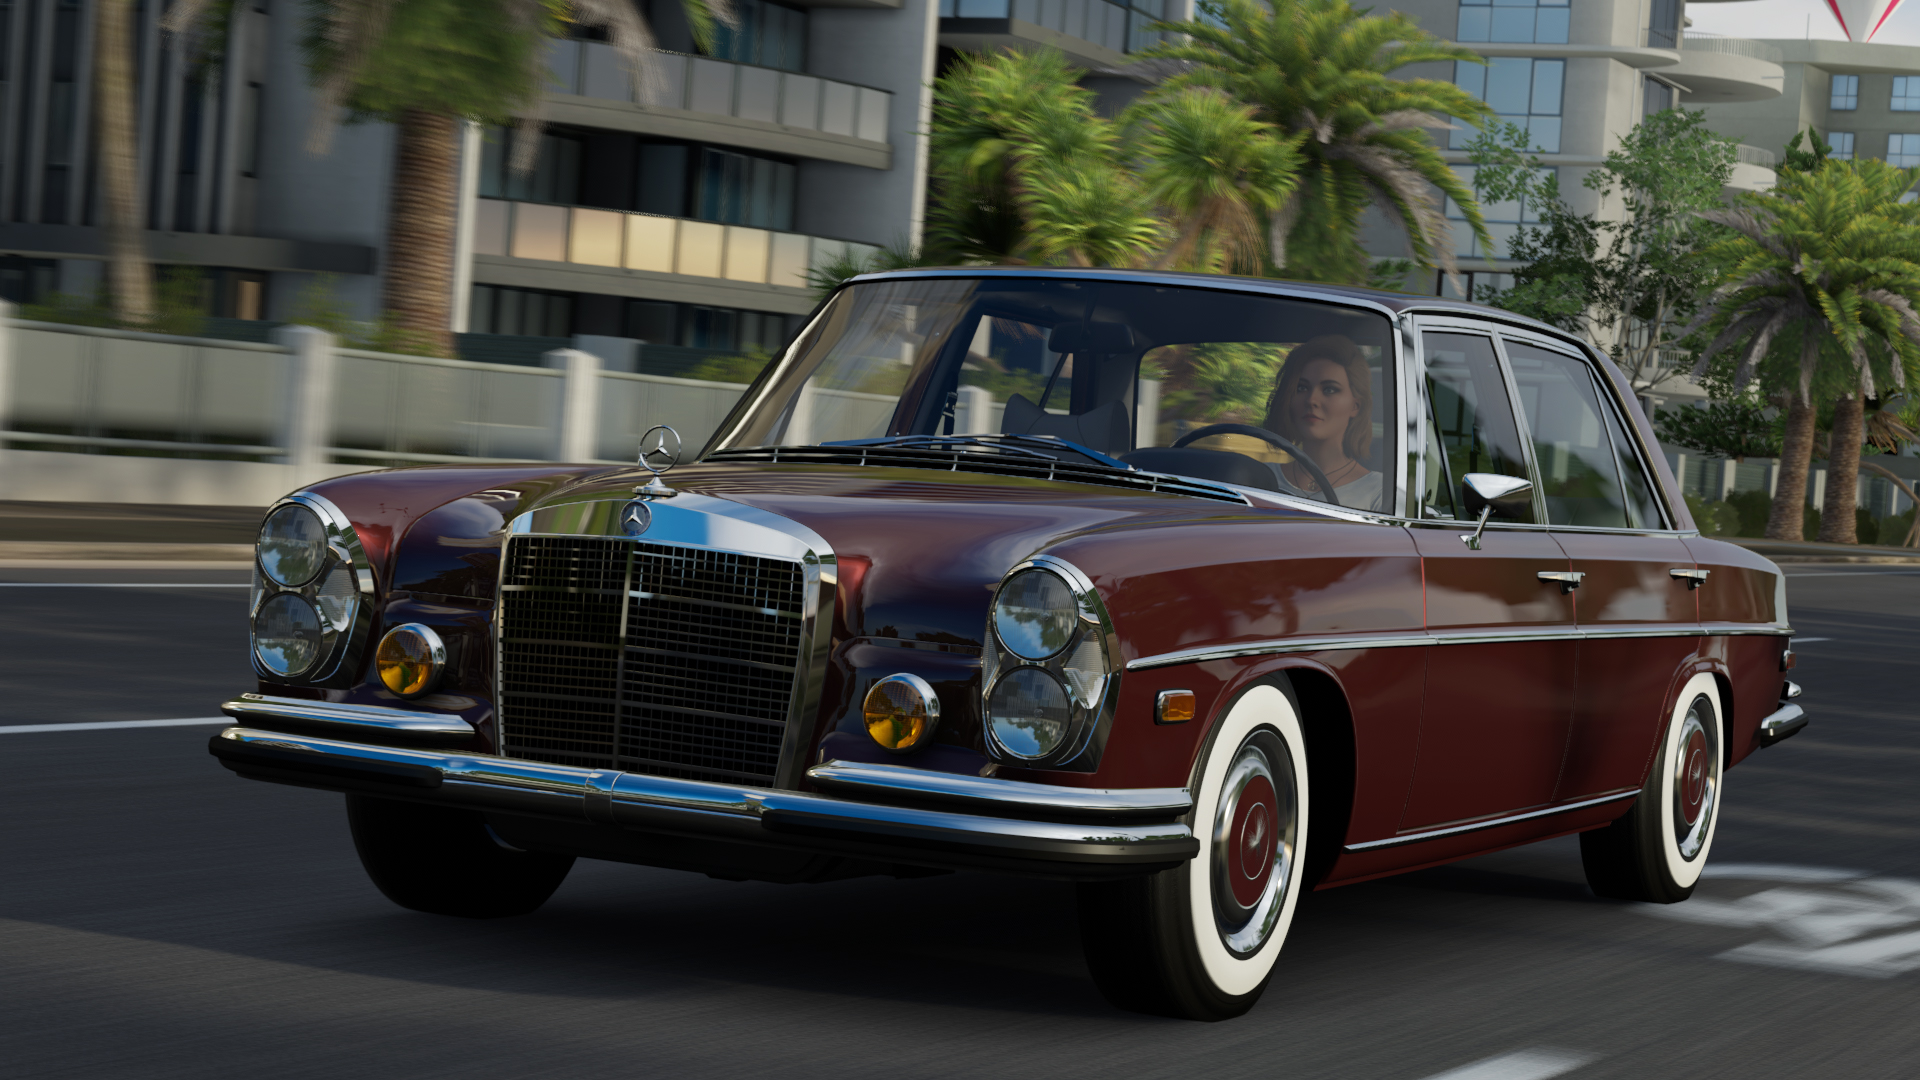 mercedes benz 300 sel 6 3 forza motorsport wiki fandom powered by wikia. Black Bedroom Furniture Sets. Home Design Ideas